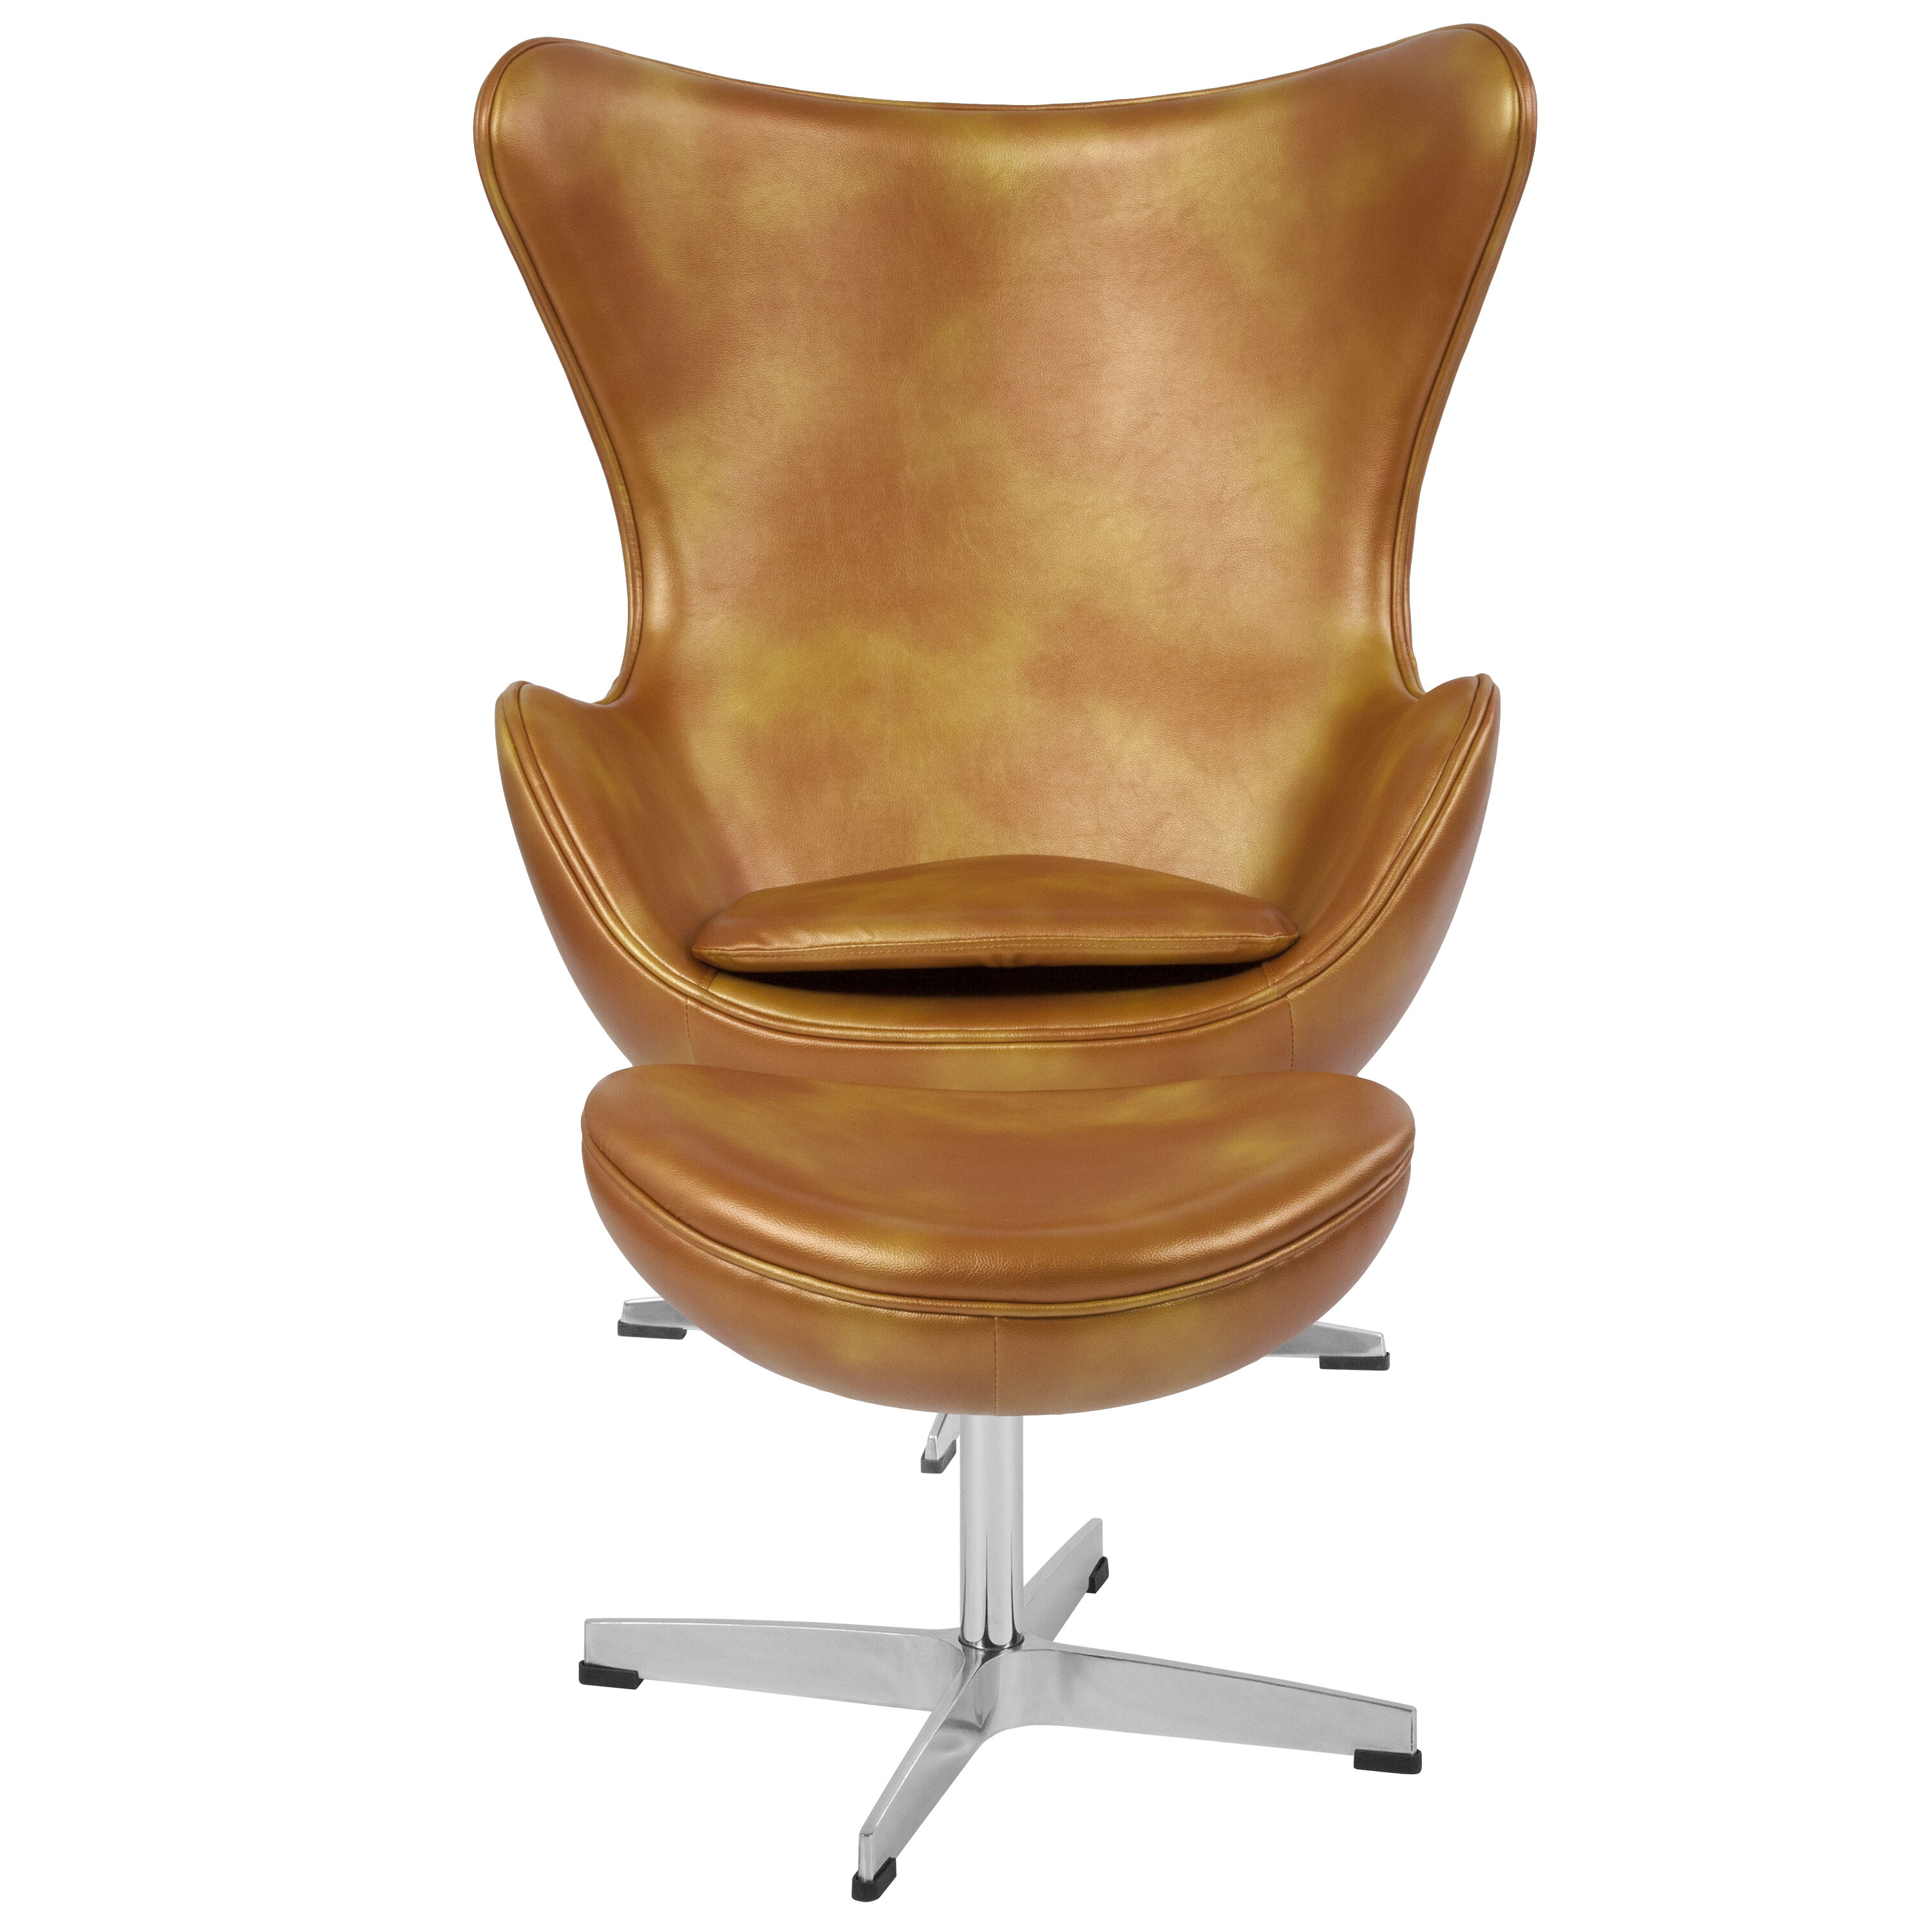 Delicieux ... Our Gold Leather Egg Chair With Tilt Lock Mechanism And Ottoman Is On  Sale Now